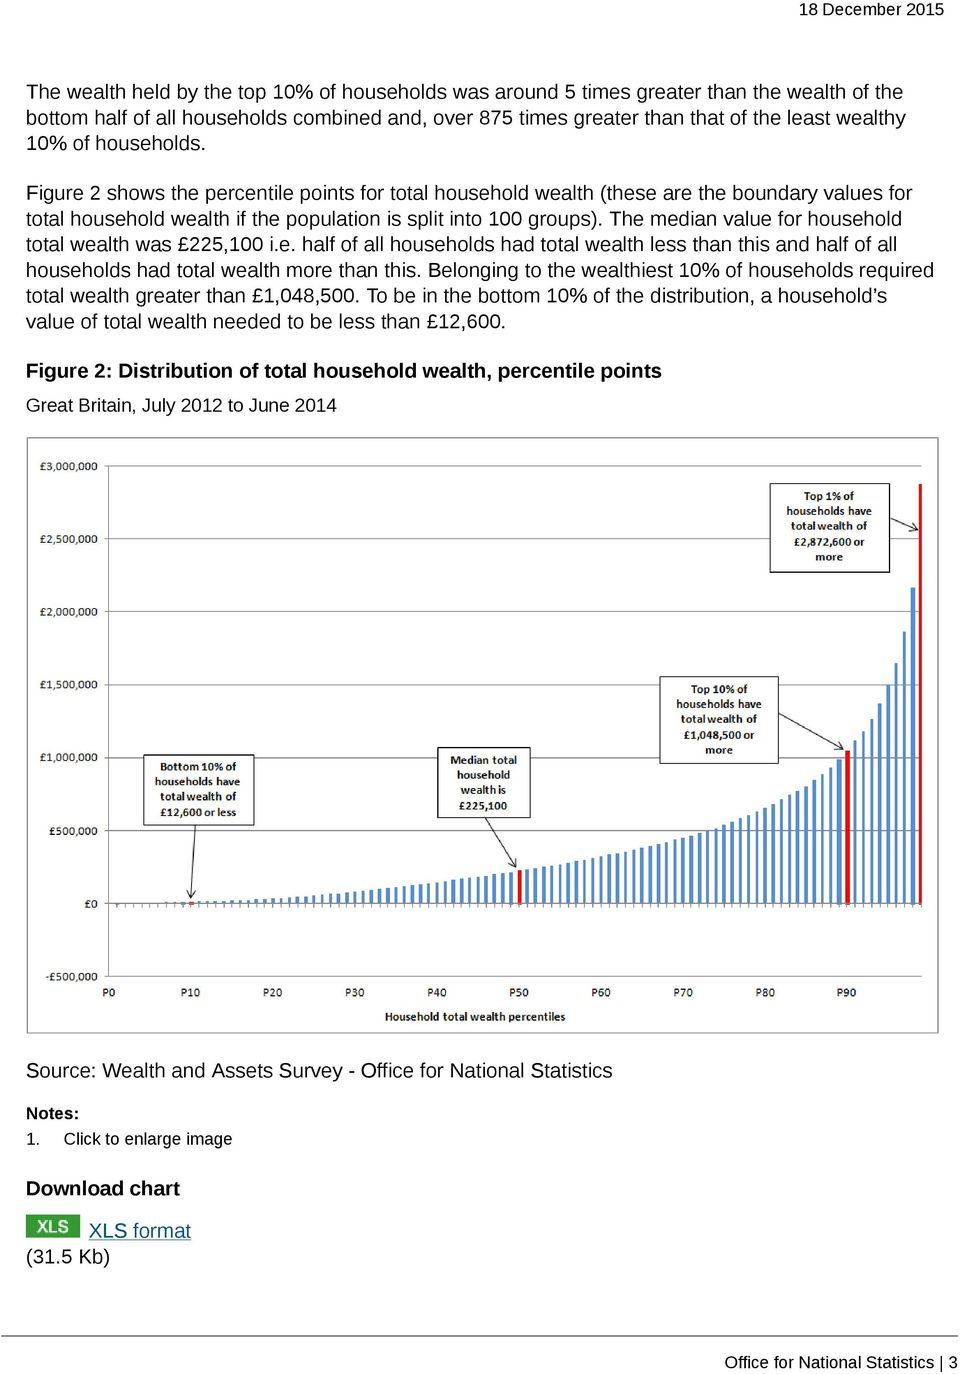 The median value for household total wealth was 225,100 i.e. half of all households had total wealth less than this and half of all households had total wealth more than this.